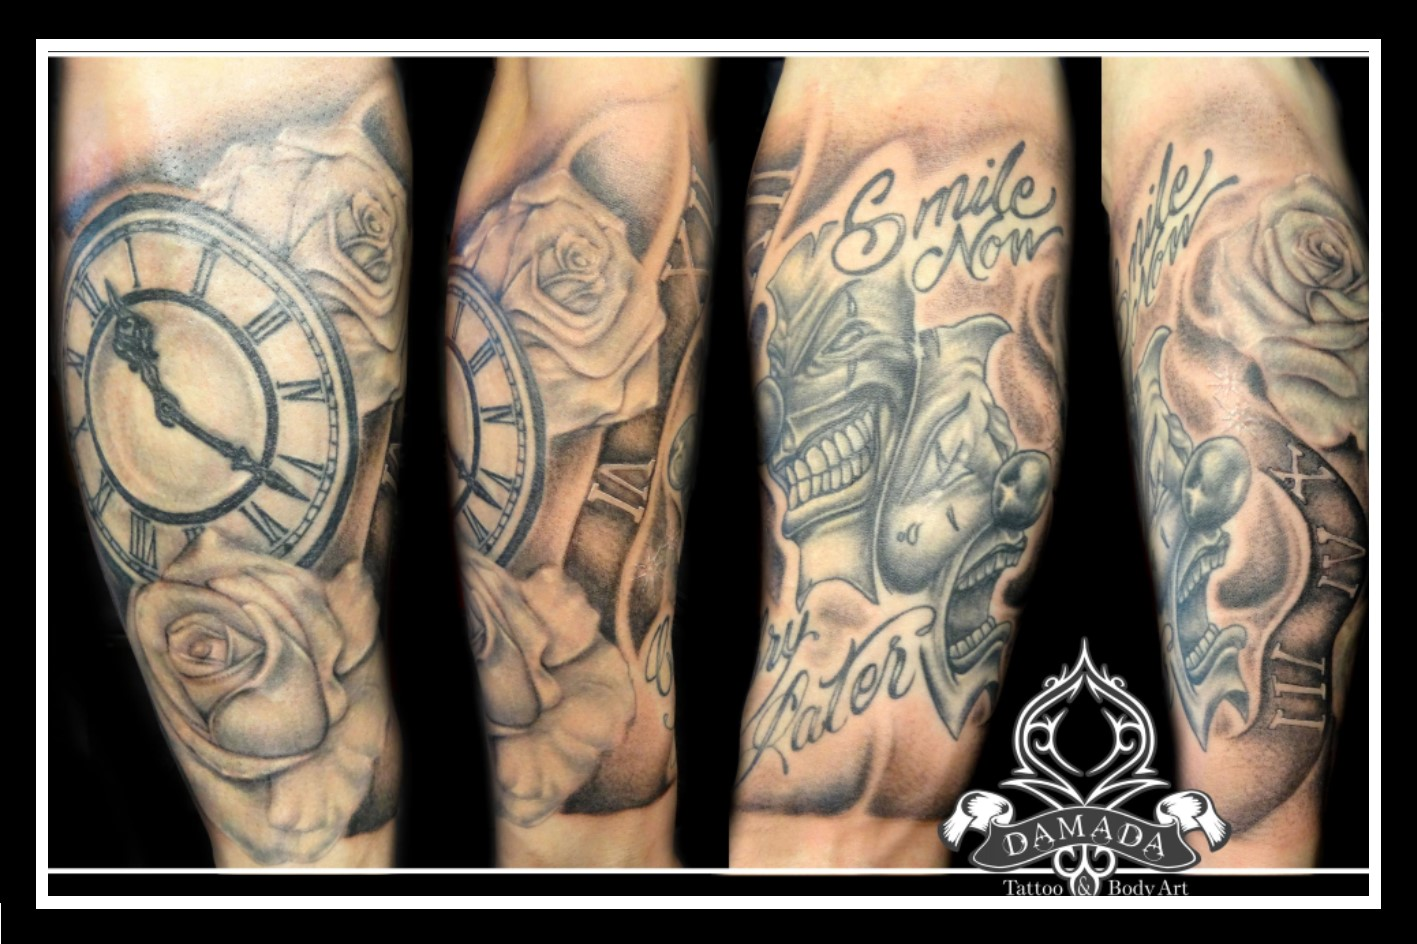 Pocket Watch Roses Smile Now